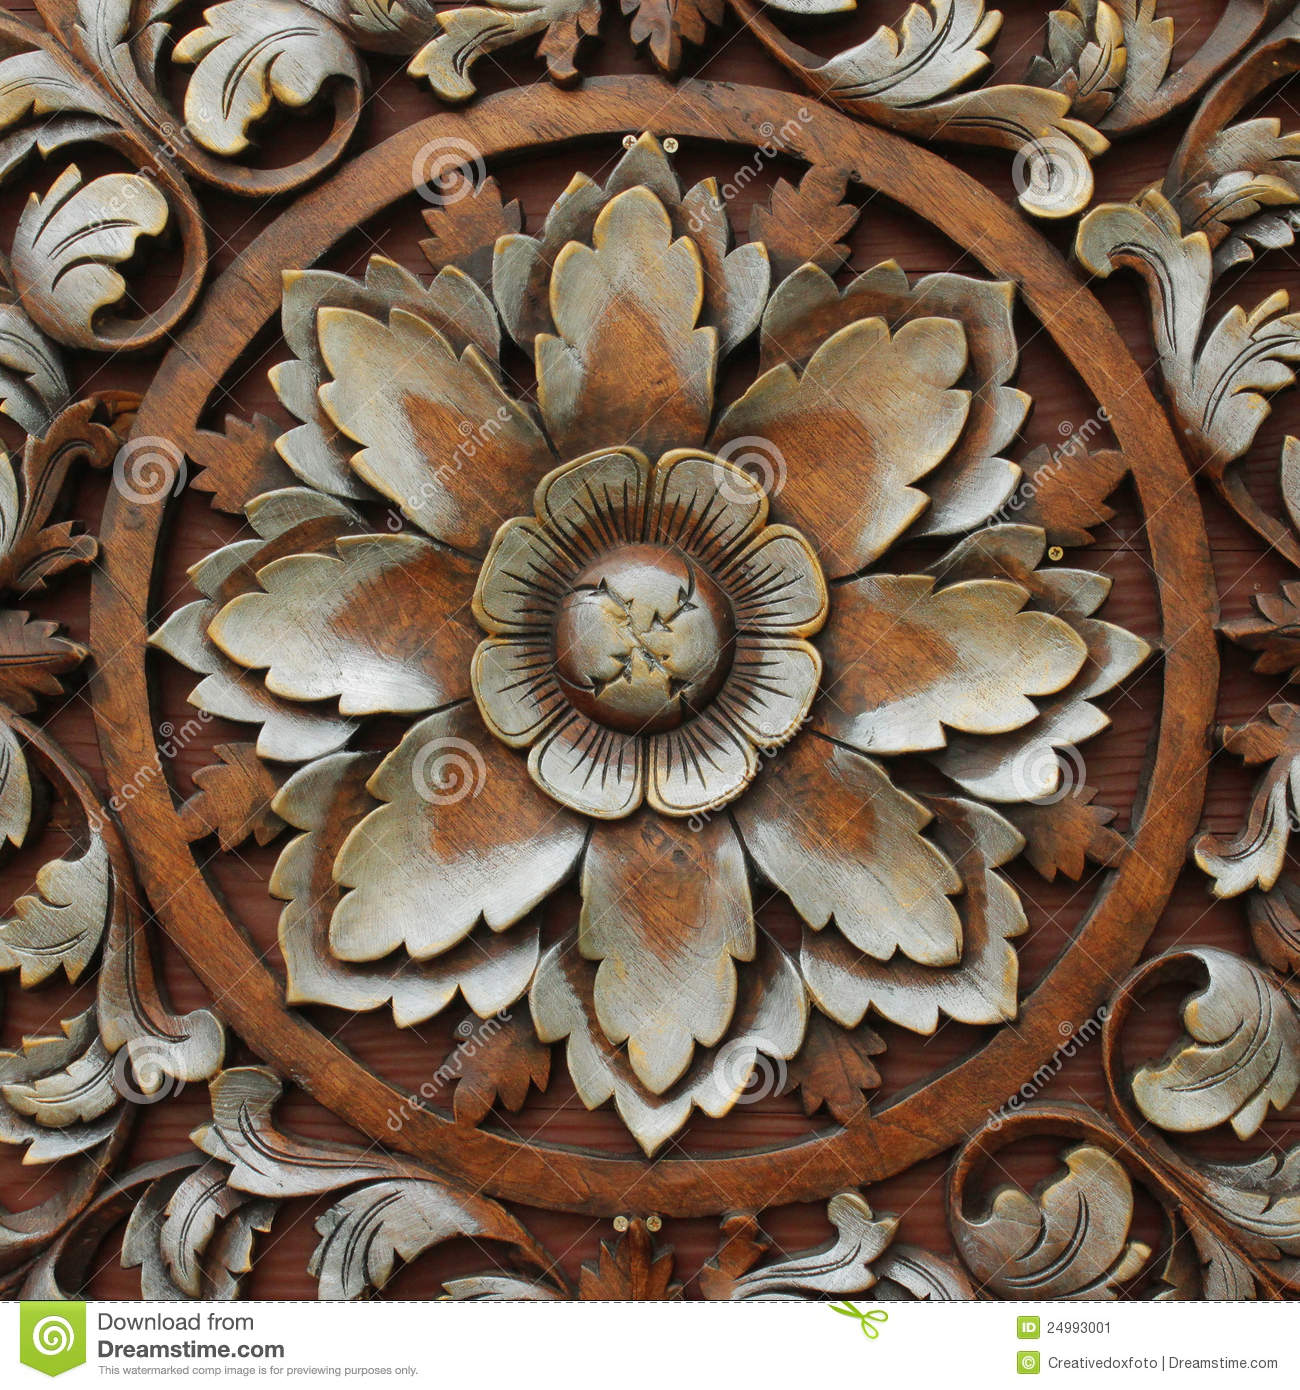 Wood Carving Patterns Stock Image - Image: 24993001